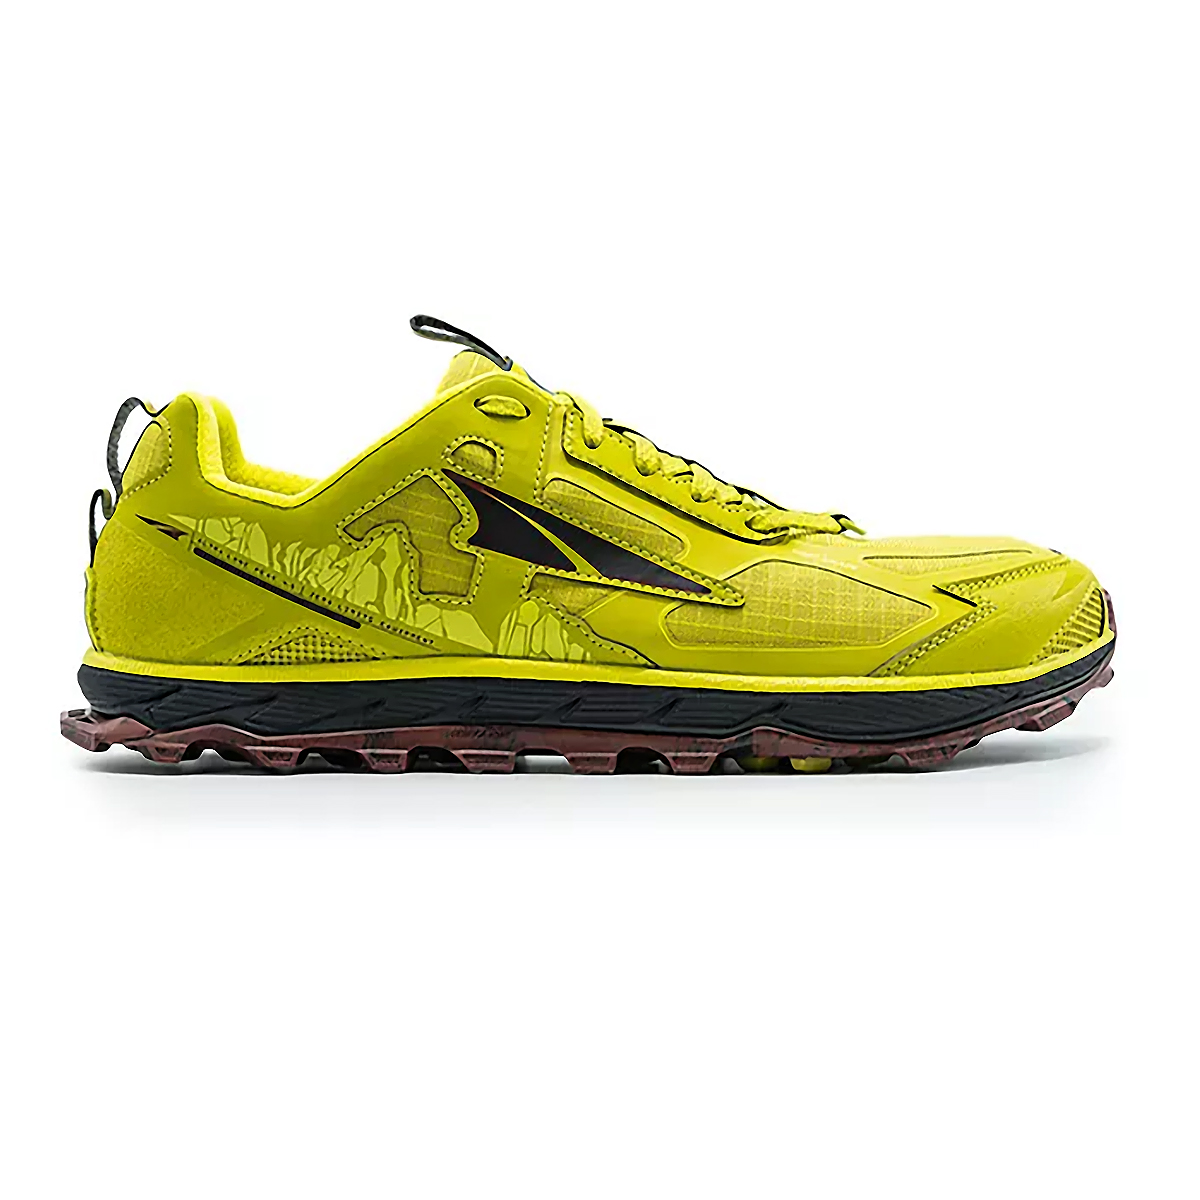 Men's Altra Lone Peak 4.5 Low Trail Running Shoe - Color: Lime/Red - Size: 7 - Width: Regular, Lime/Red, large, image 1